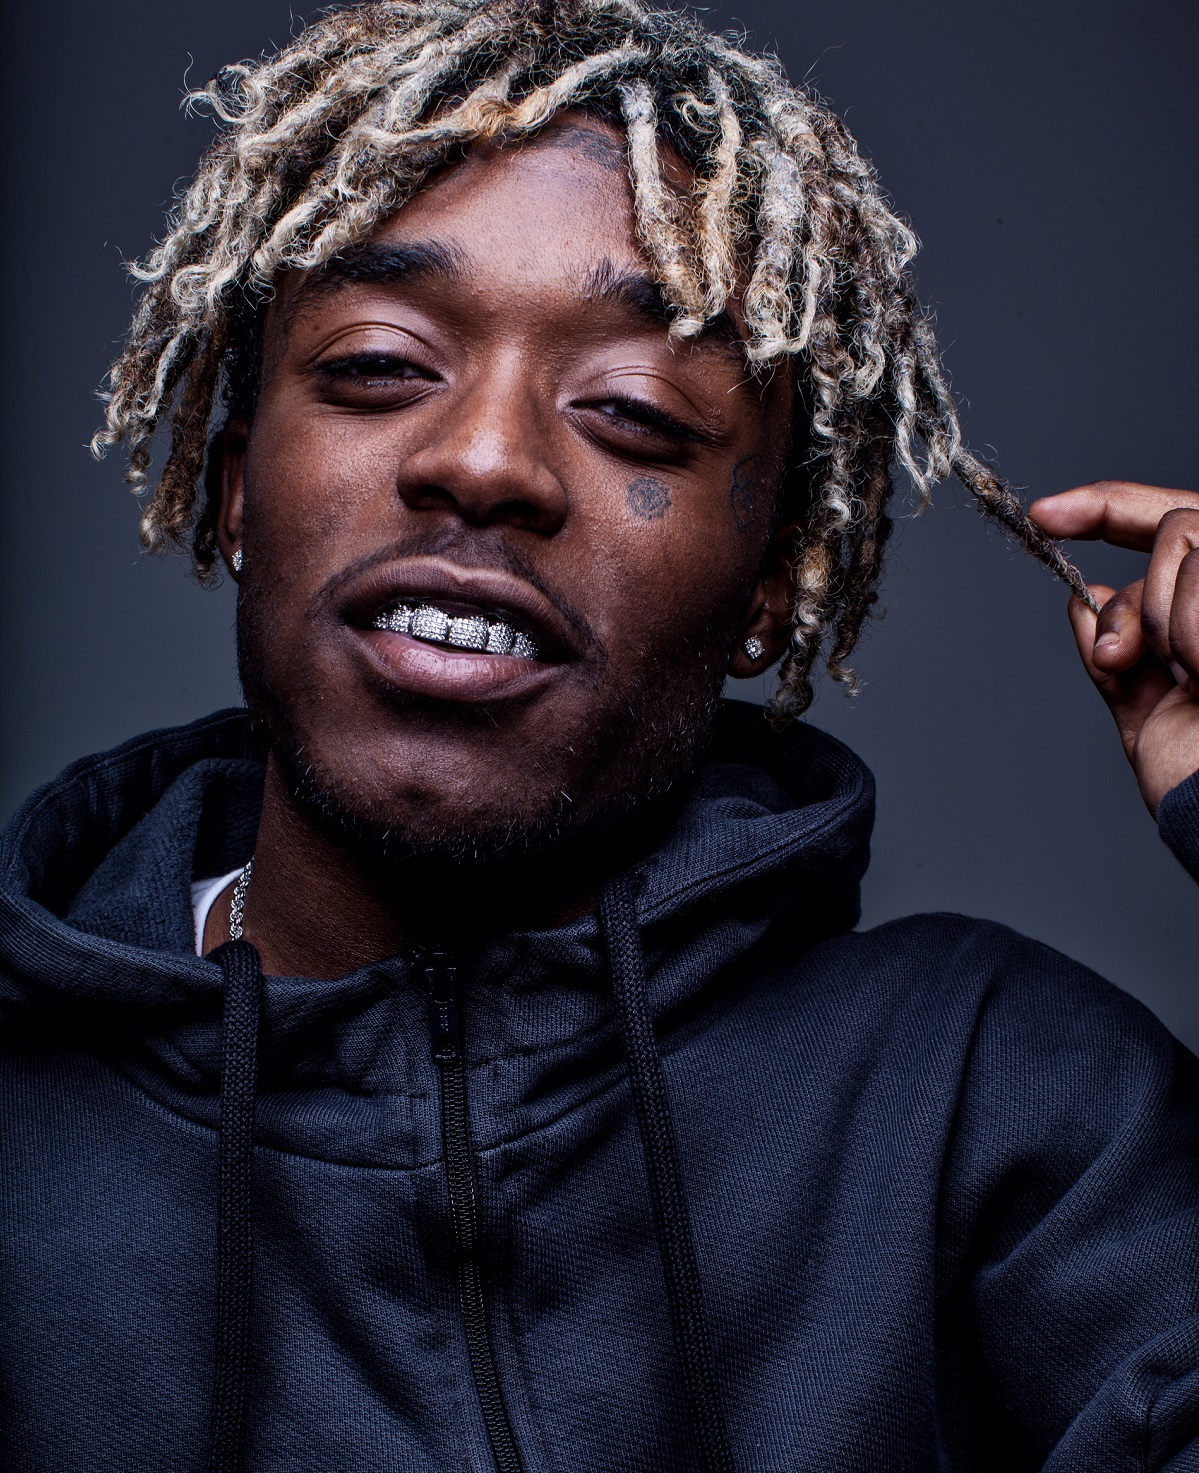 Lil-Uzi-Vert-Main-Pub-Photo-1-Photo-Credit-Spike-Jordan-HR-1200